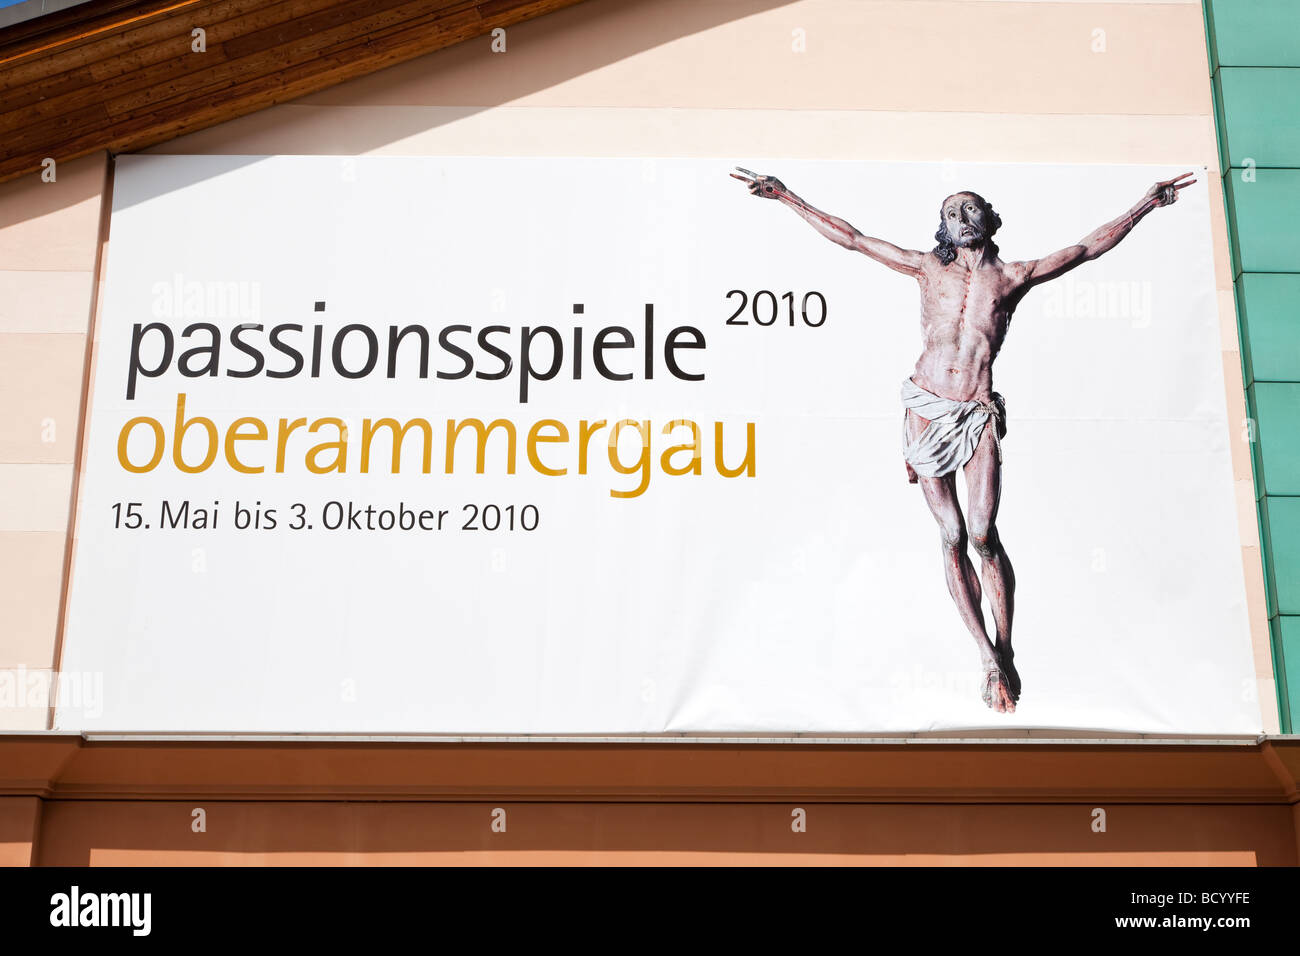 Oberammergau Passion Play Theatre poster 2010, Bavaria, Germany - Stock Image